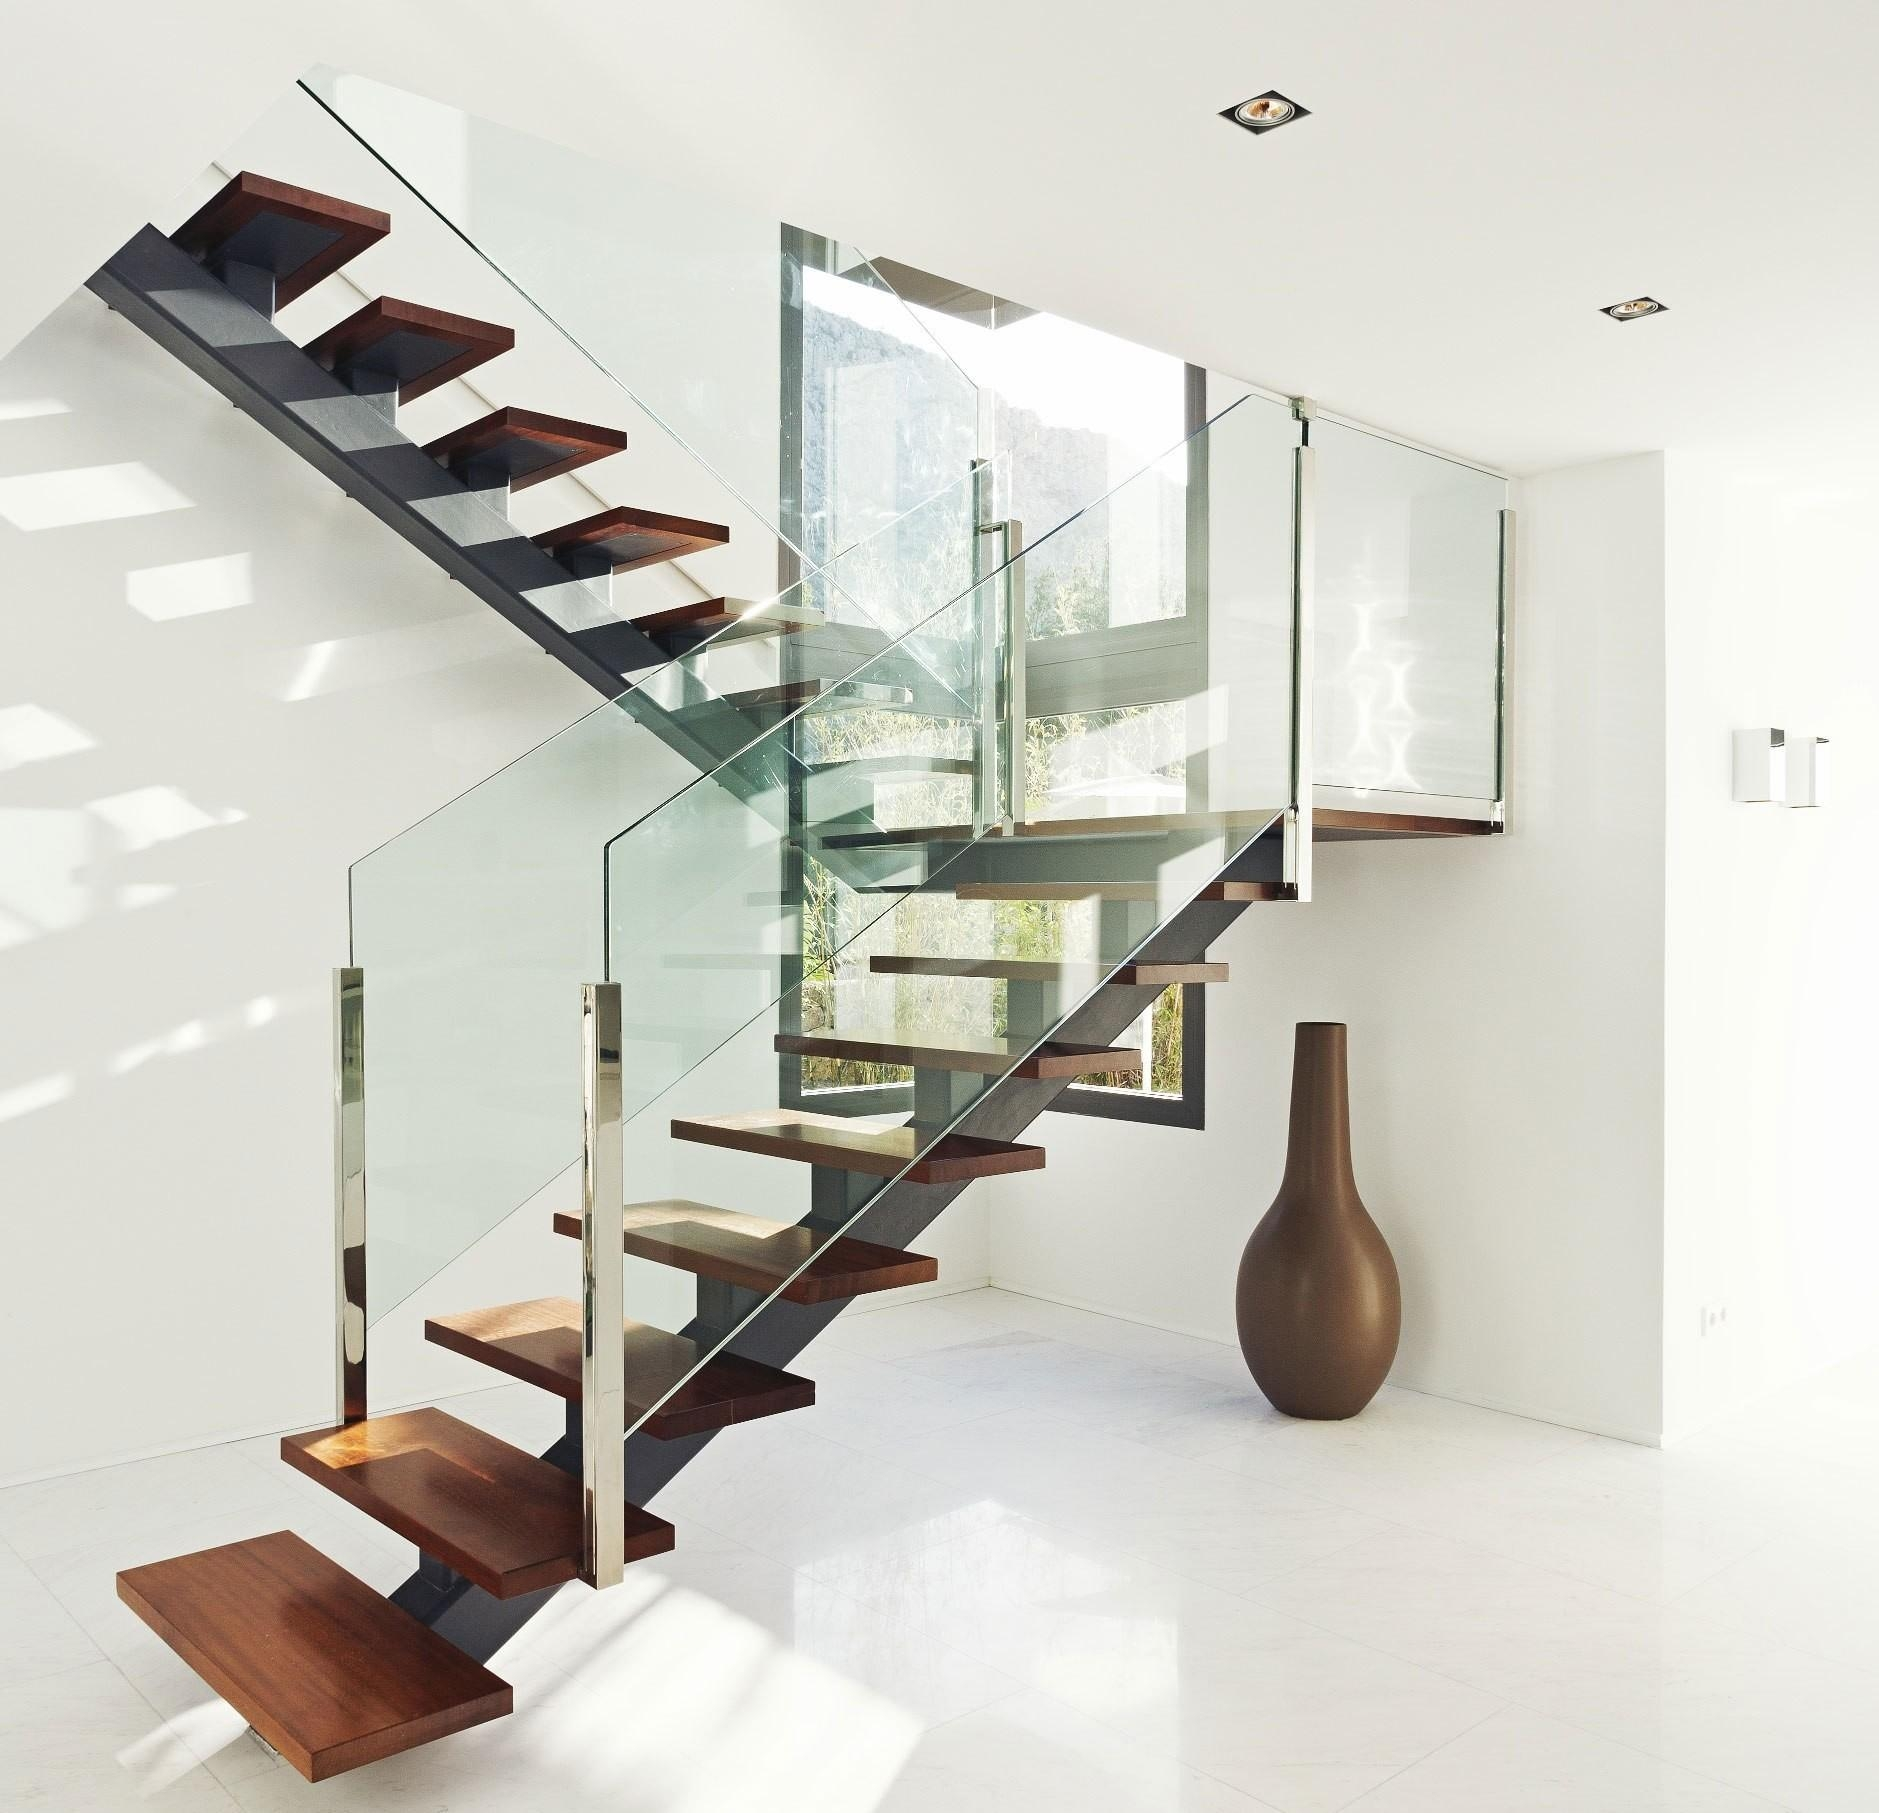 Fresh Glass Staircase Ideas Contemporary Design That Are Super | Glass And Chrome Staircase | Contemporary | White Post | Single Spine | Lights | Stainless Steel